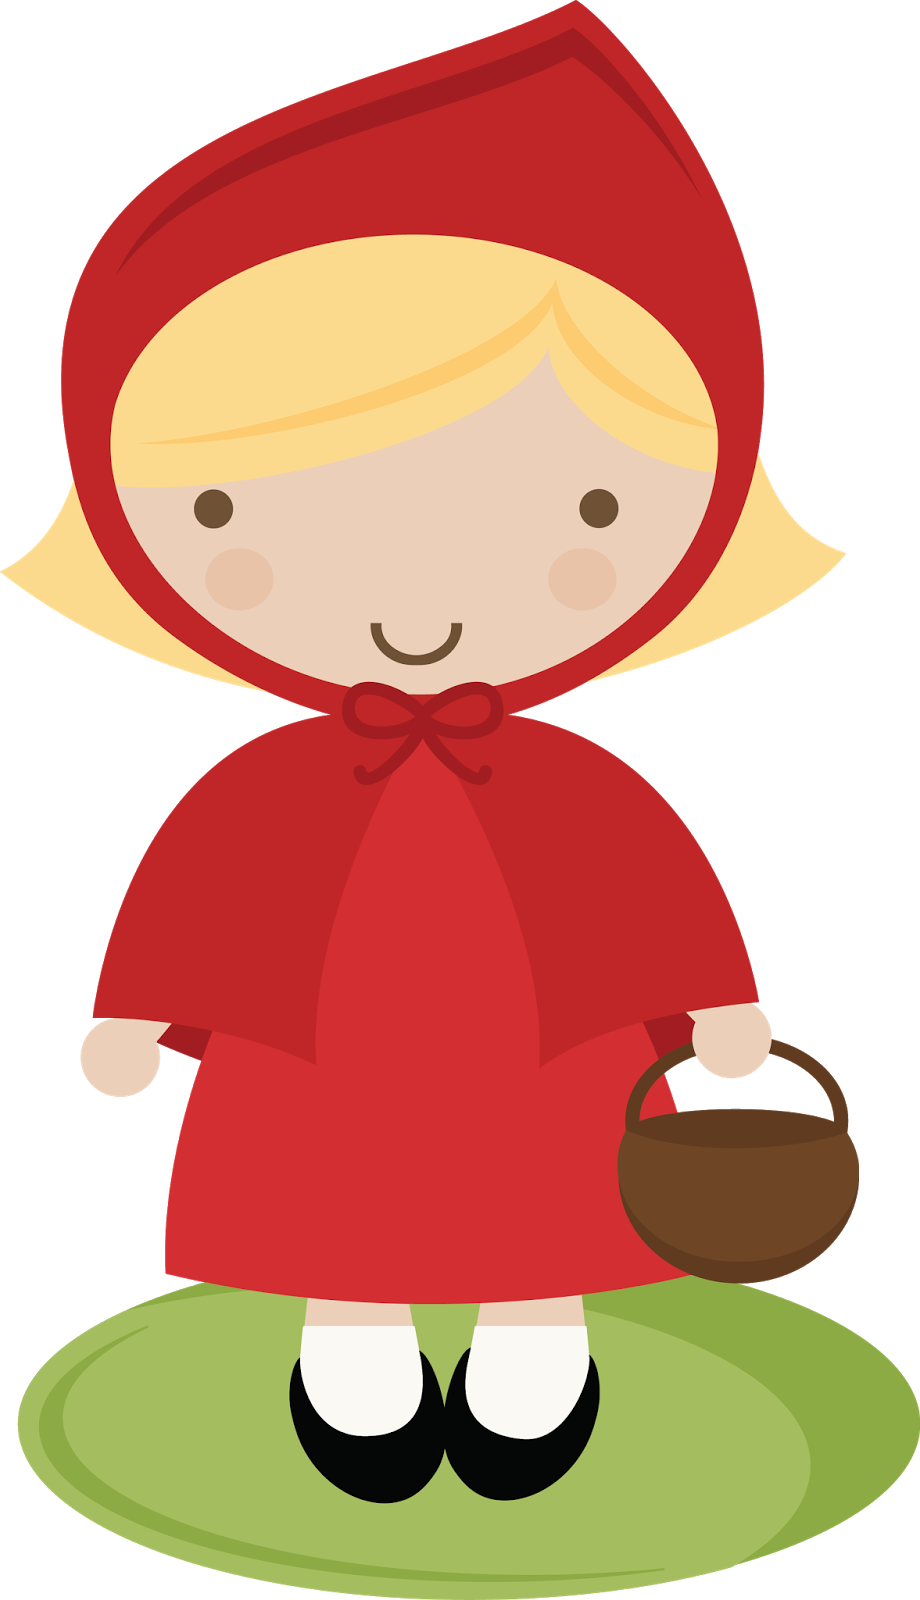 Wolf clipart red riding hood. Little template best blondie